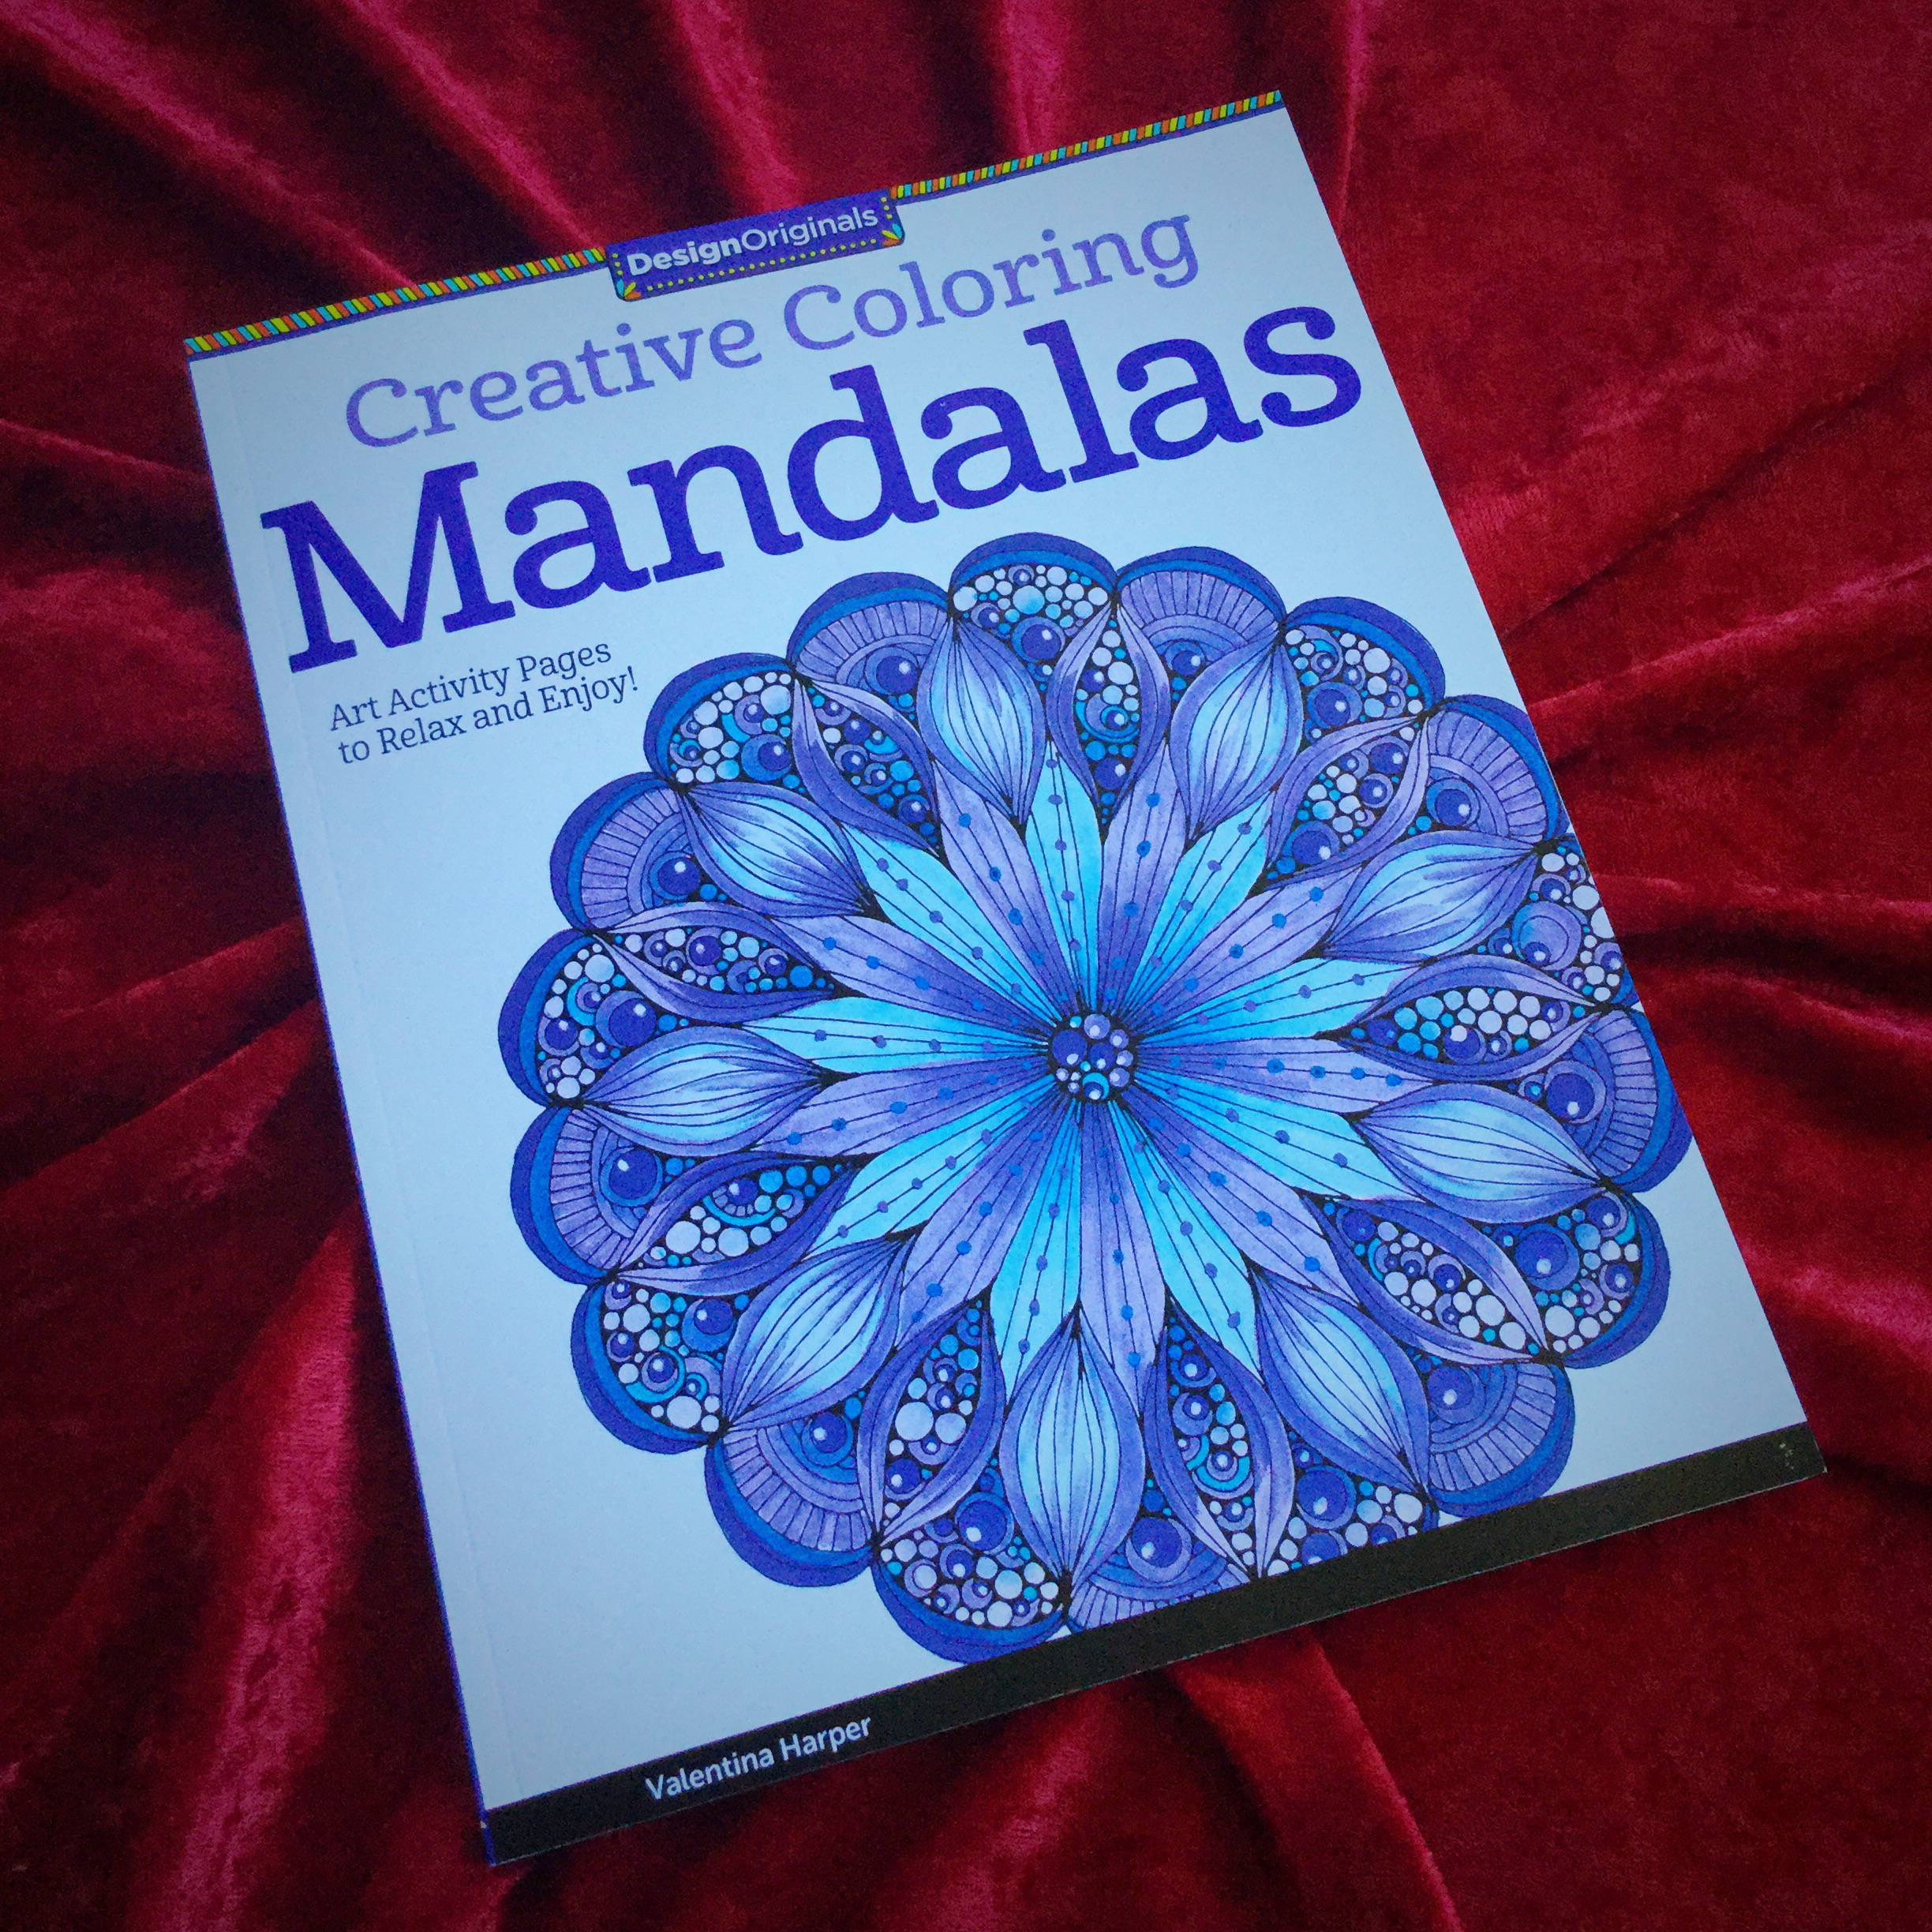 Creative Coloring Mandalas by Valentina Harper for a vibrant exercise in  presencing